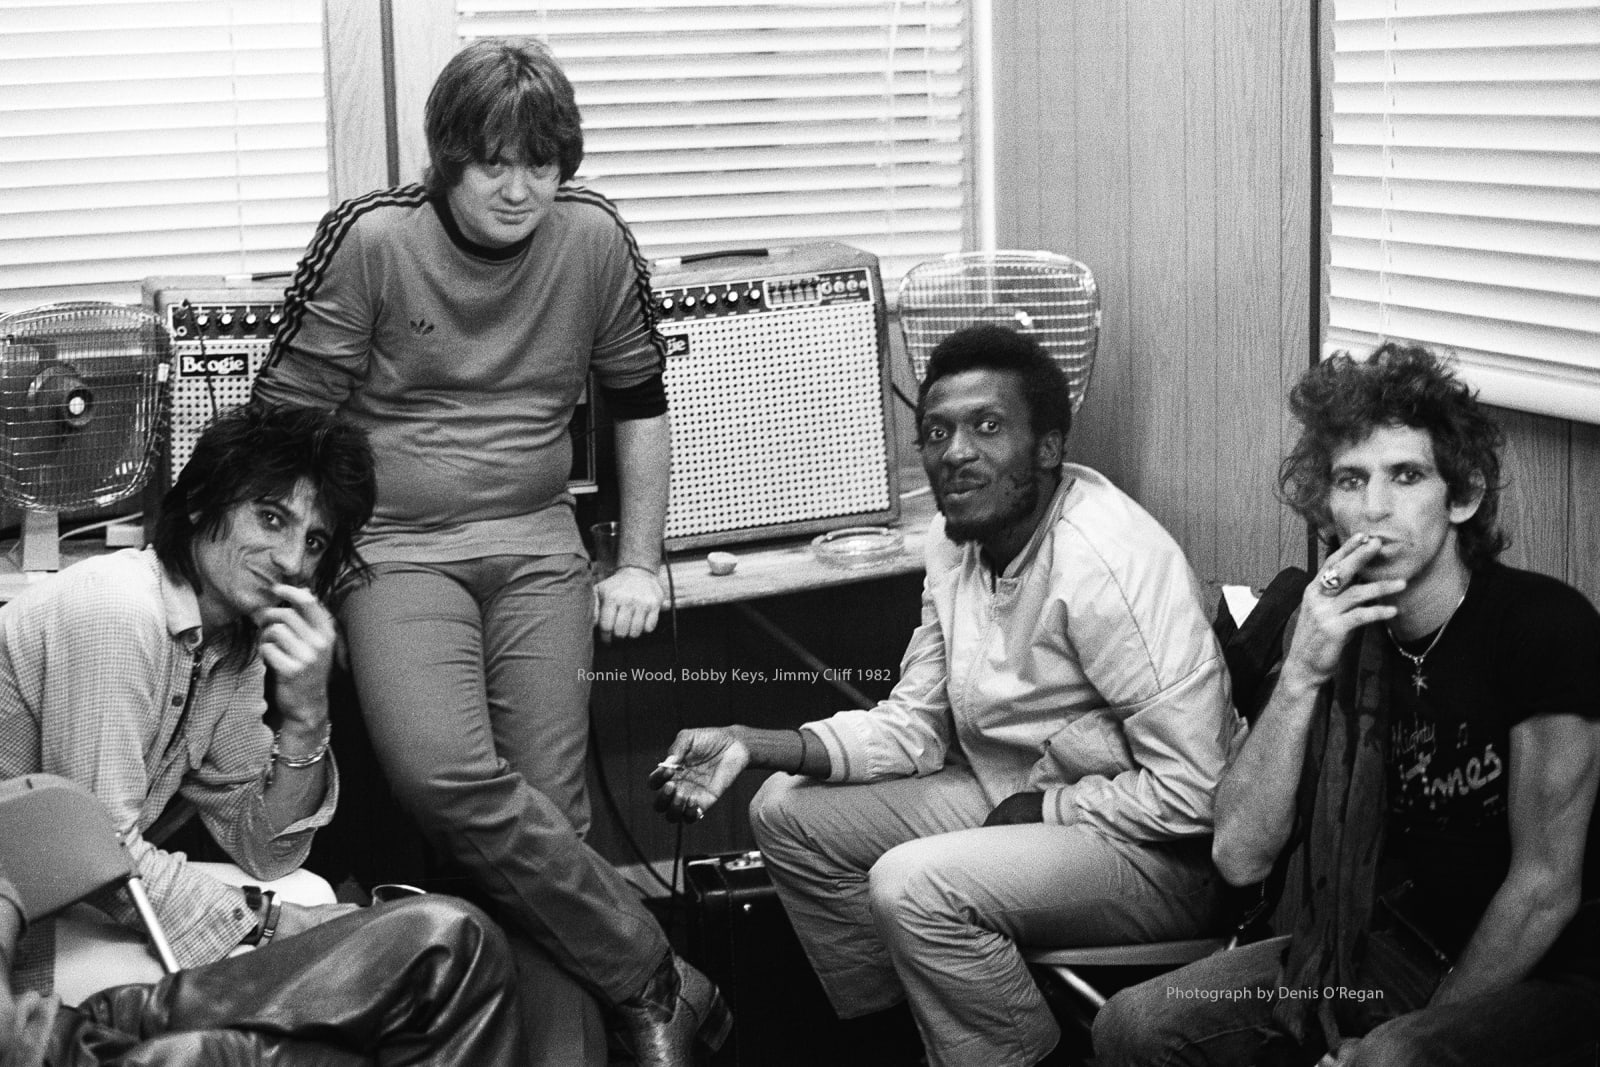 ROLLING STONES, Backstage with Jimmy Cliff, 1982